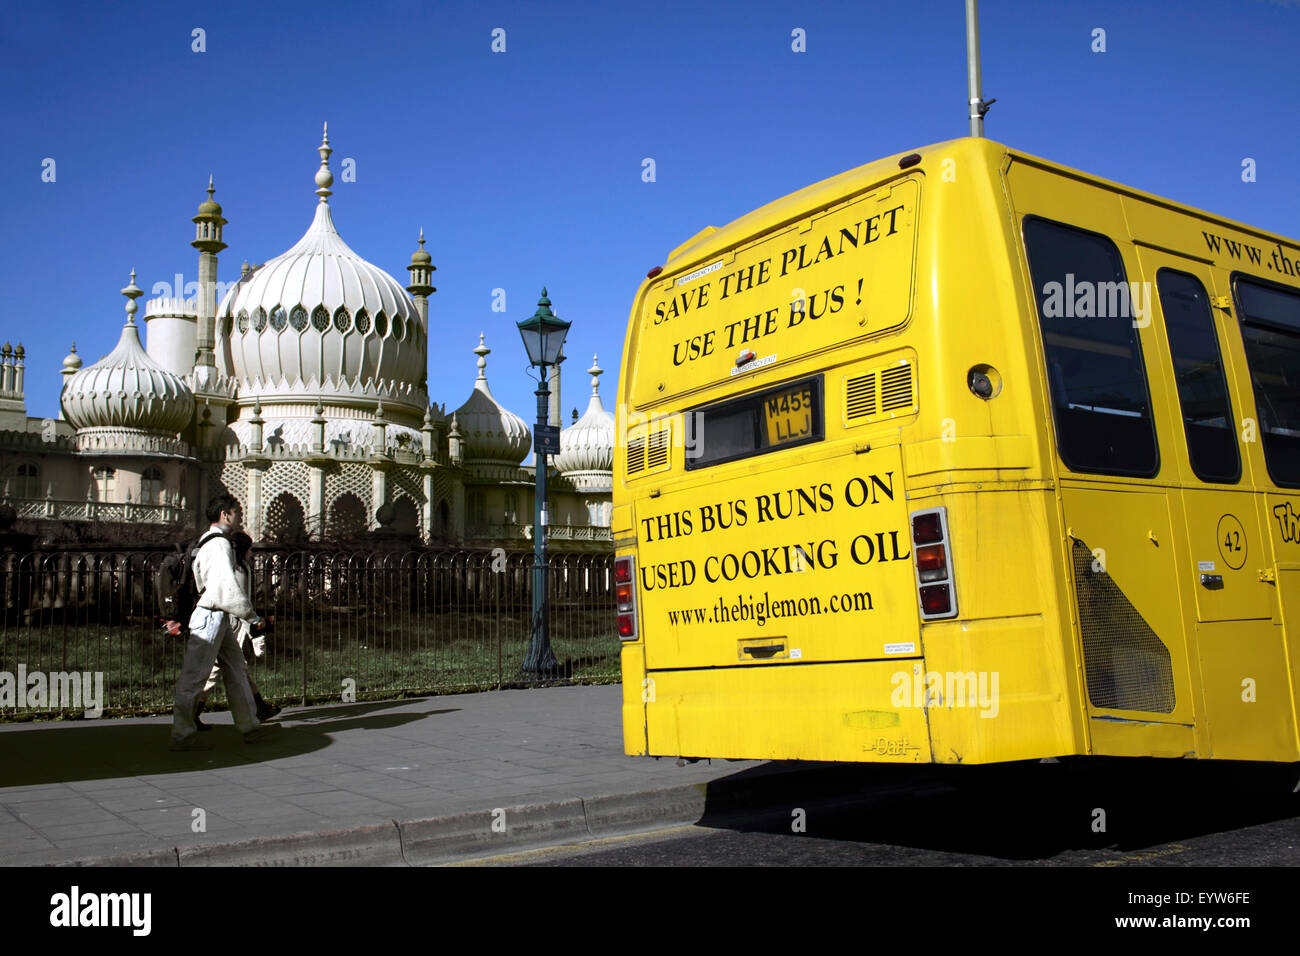 A bus that runs on biodiesel fuel made from recycled waste cooking oil, Brighton. - Stock Image